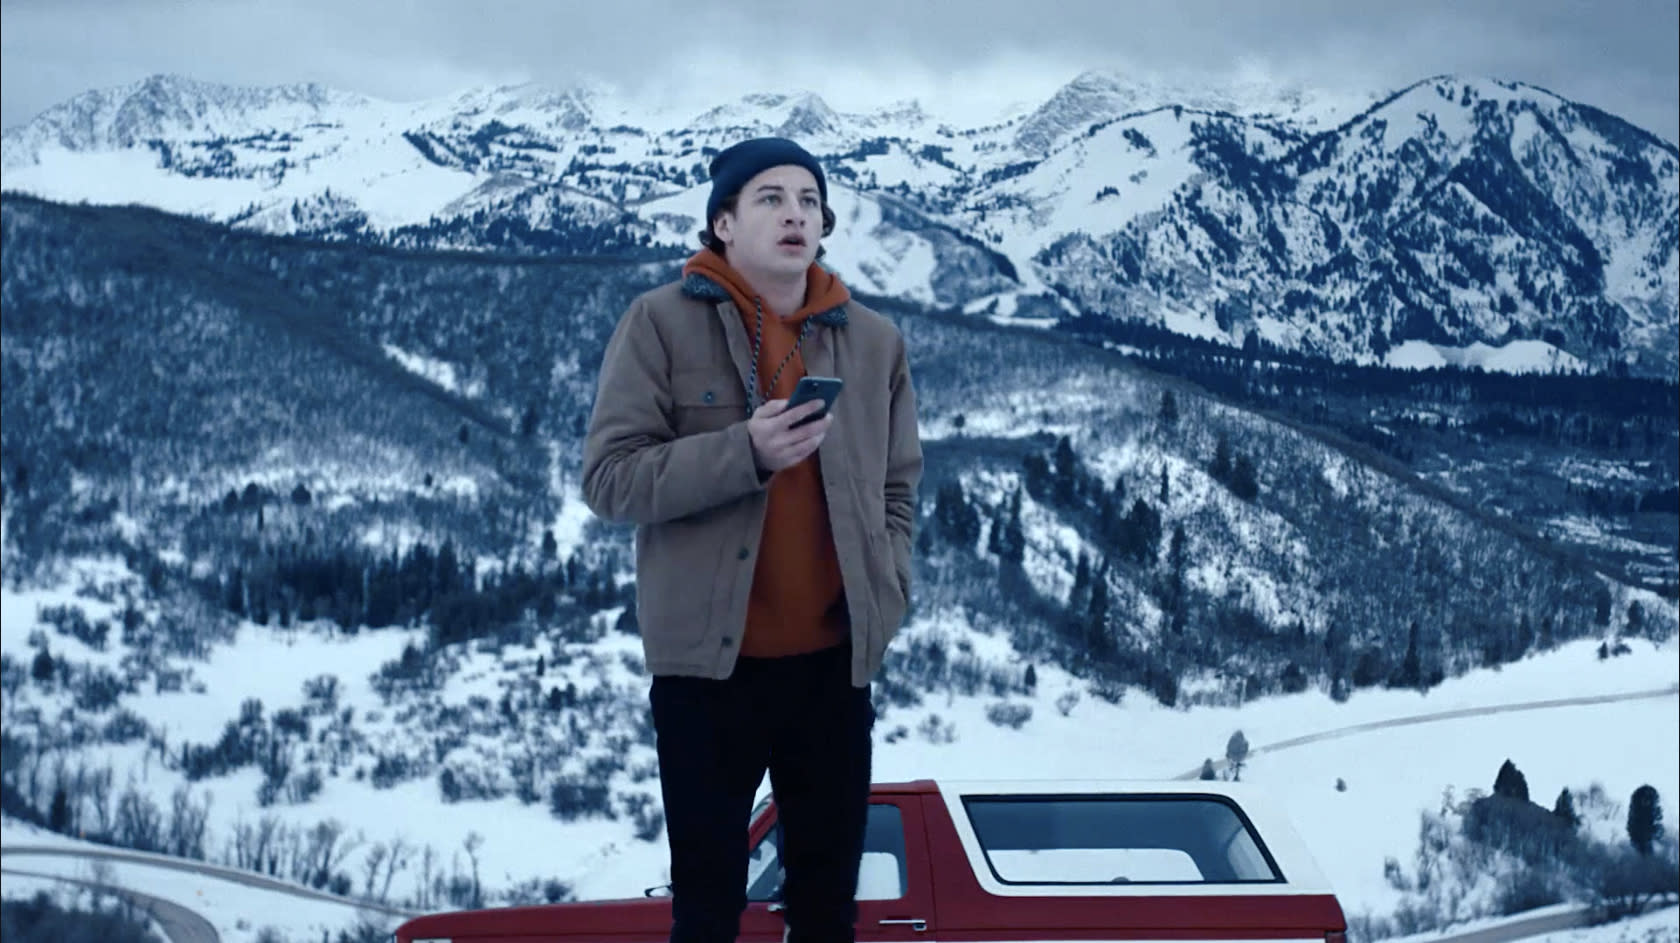 """This image released by Quibi shows Tye Sheridan in a scene from """"Wireless"""" which follows a college student navigating the snowy Colorado mountains. (Quibi via AP)"""